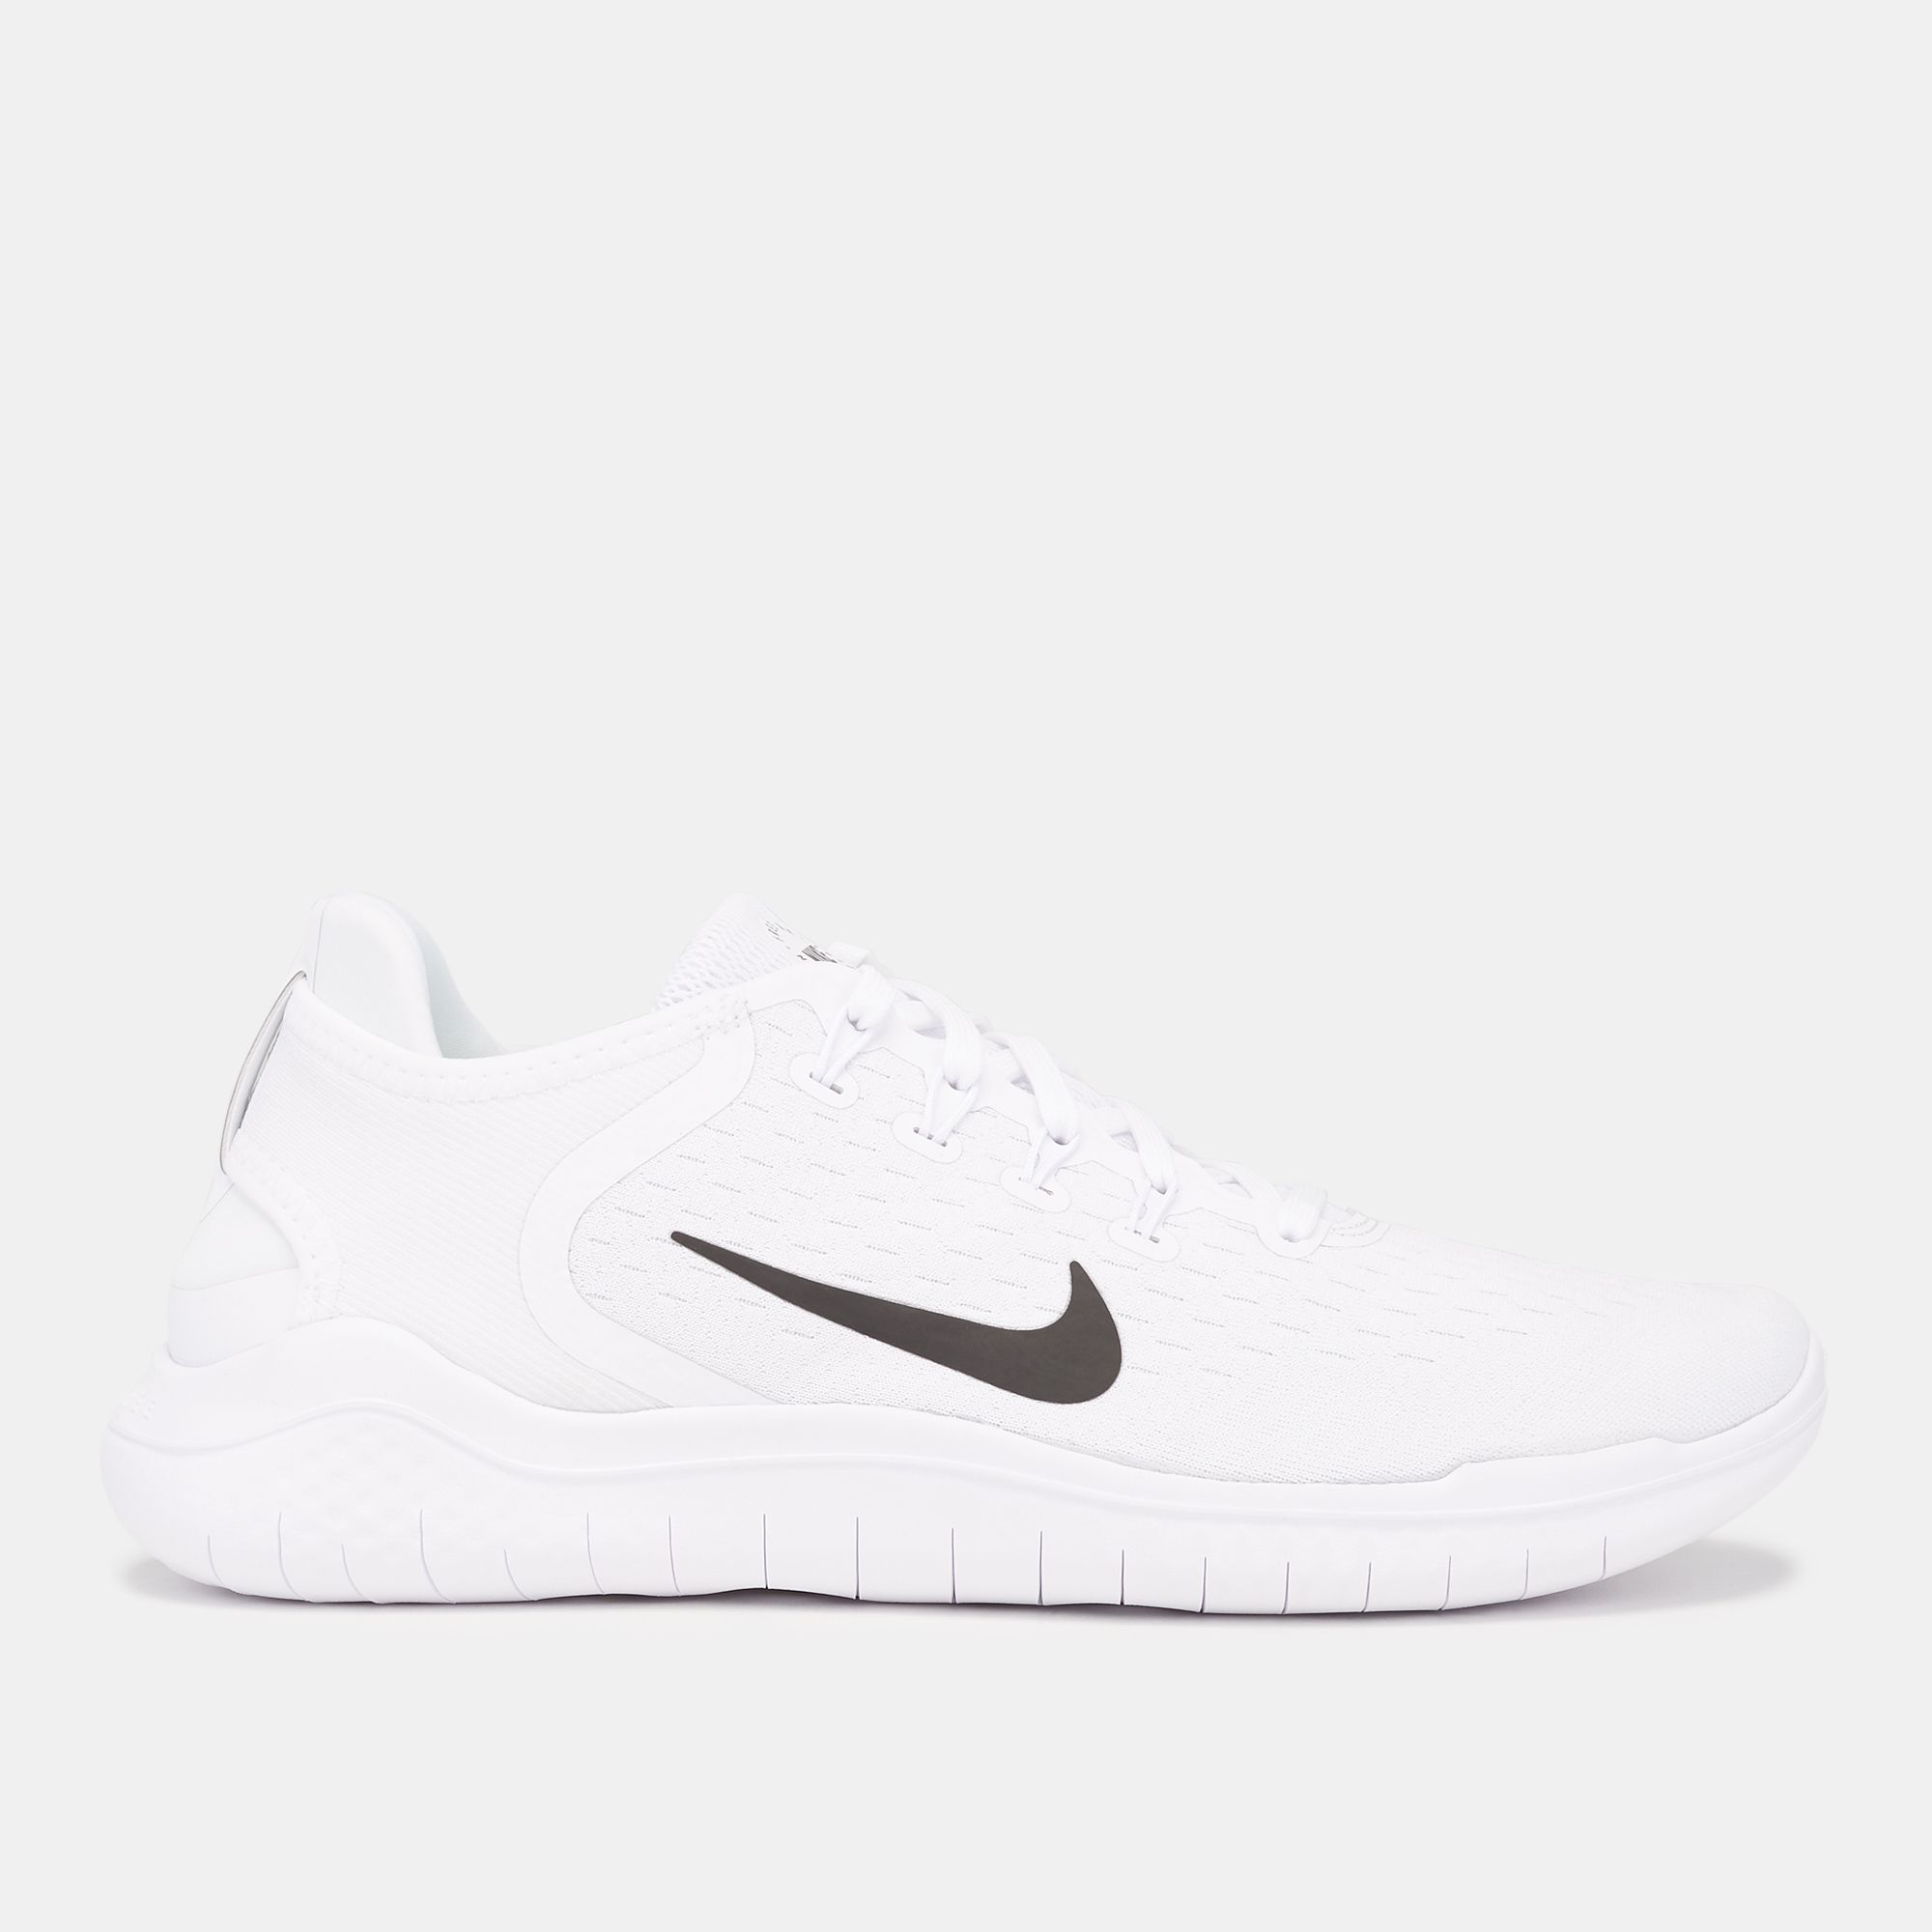 quality design e9d7e 9f907 Nike Free RN 2018 Shoe   Running Shoes   Shoes   Men s Sale   Sale   SSS